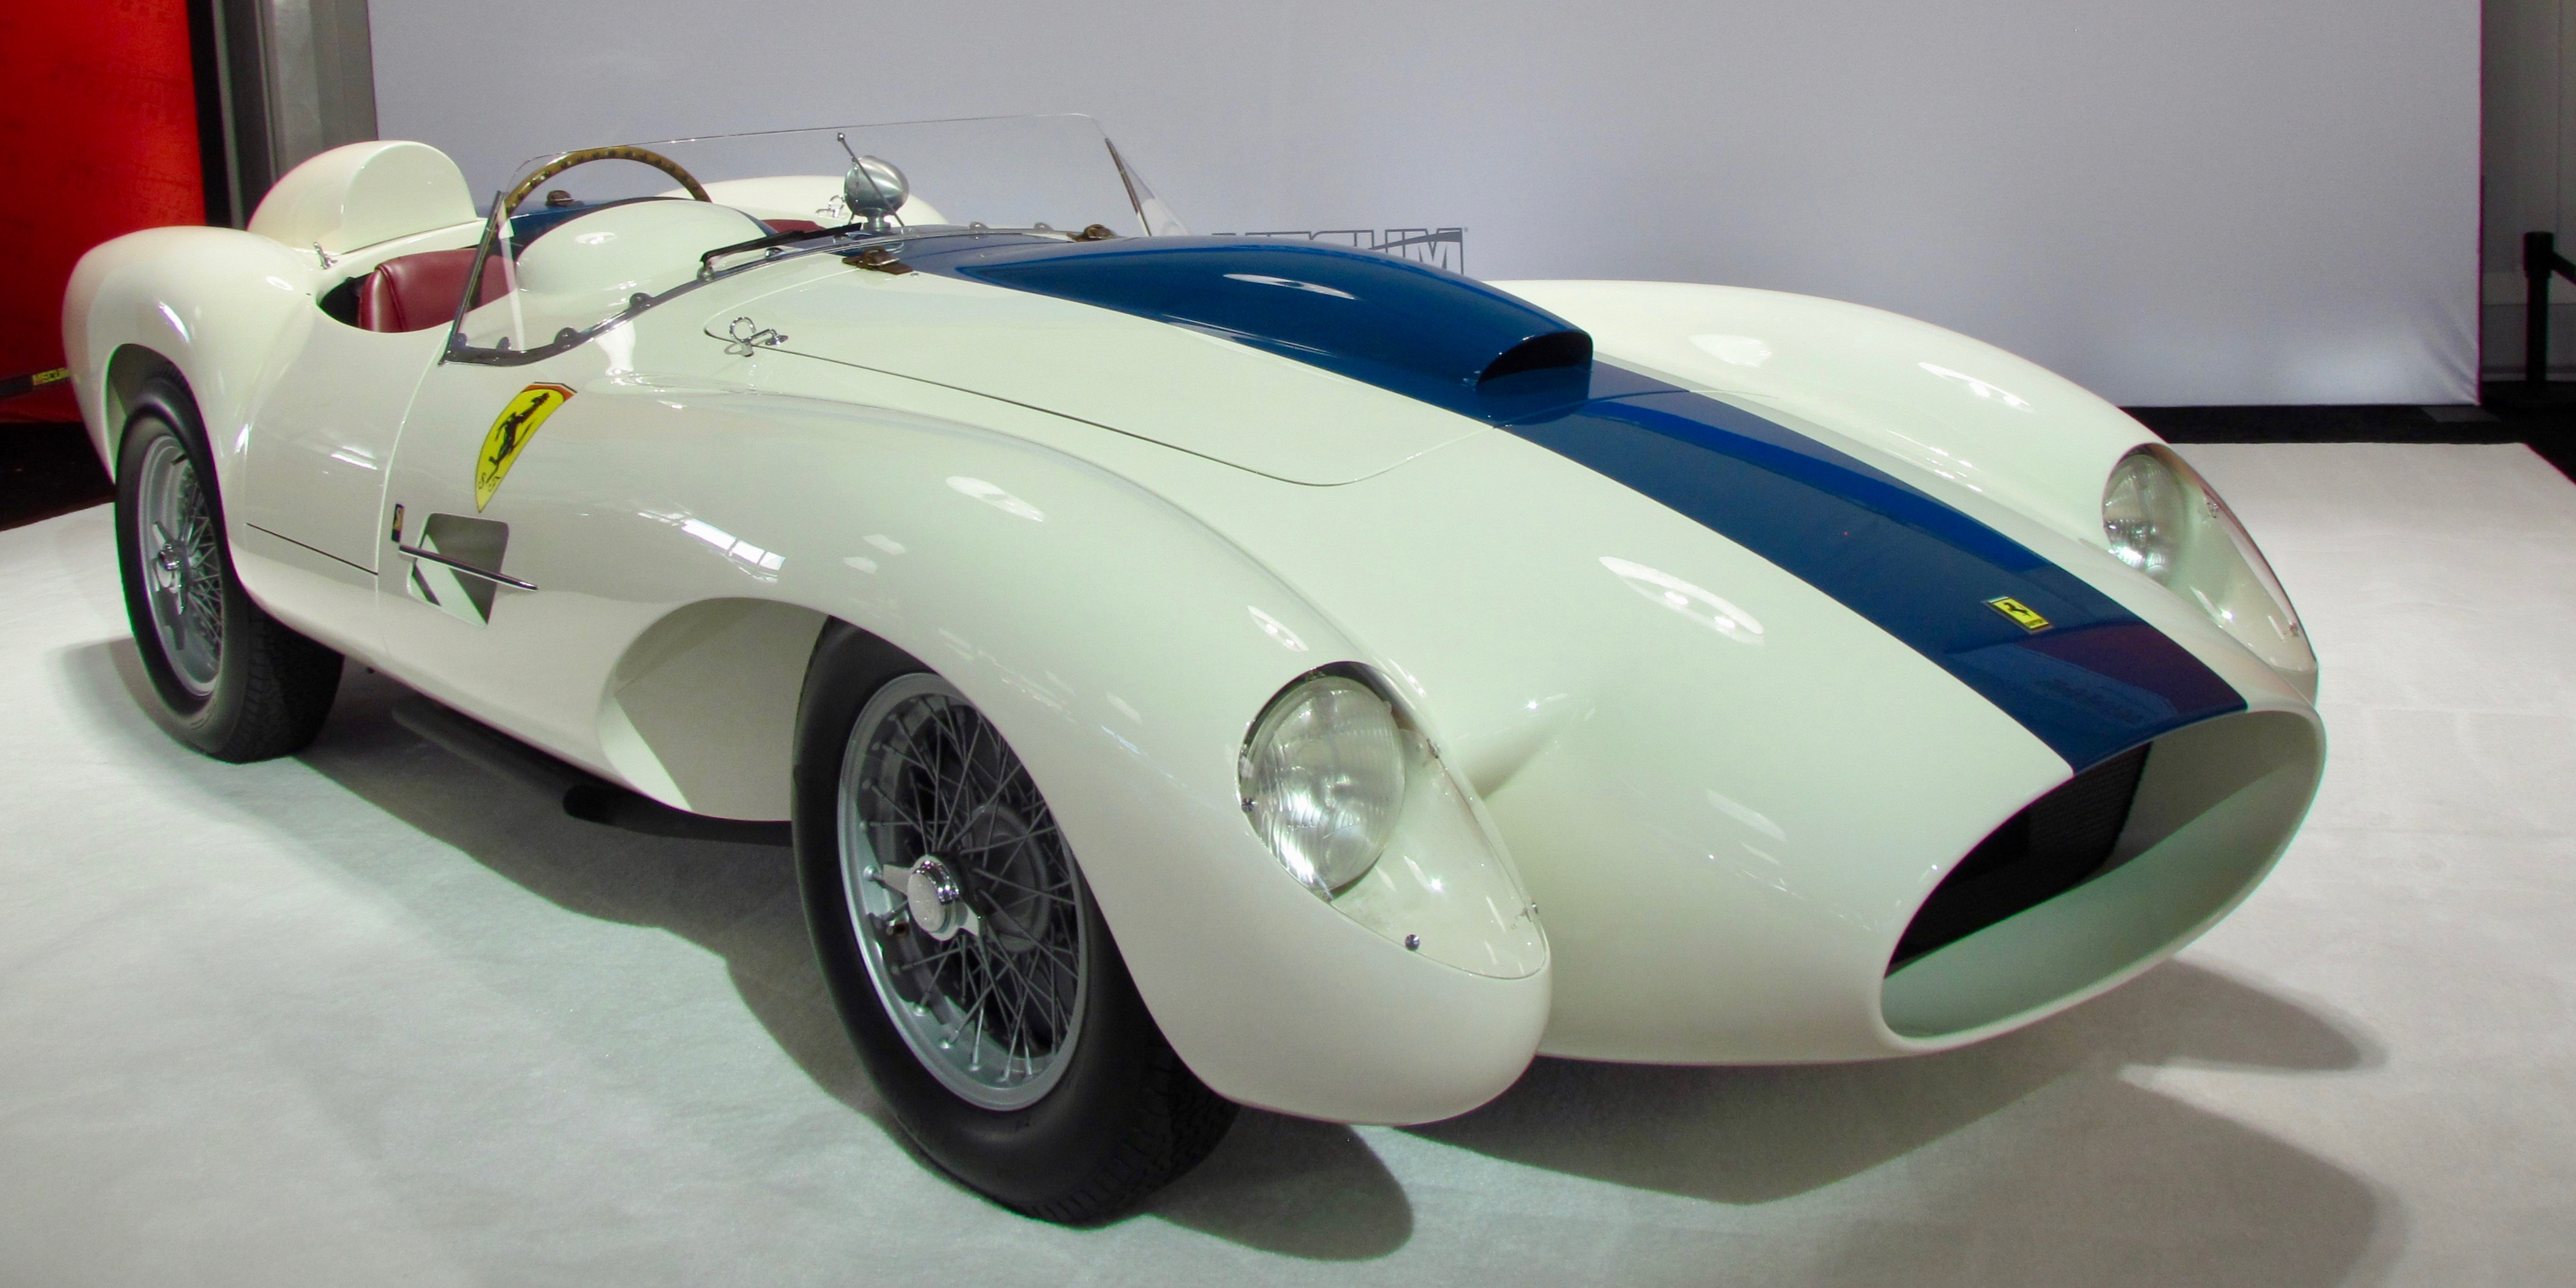 Collector car values, What do house prices in London have to do with the value of your collector car?, ClassicCars.com Journal